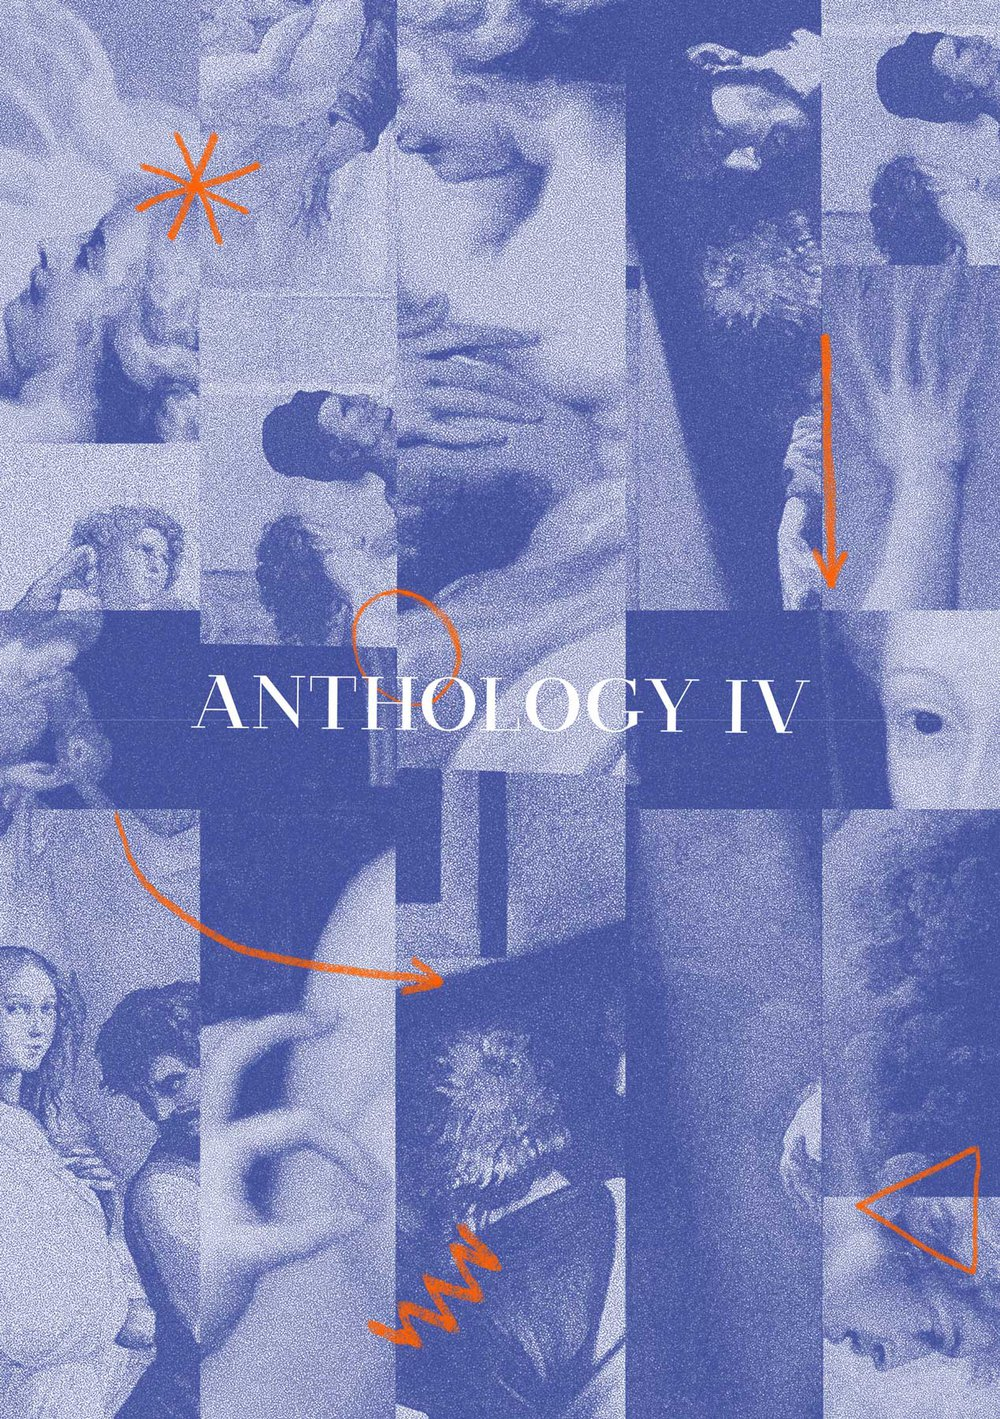 Anthology IV